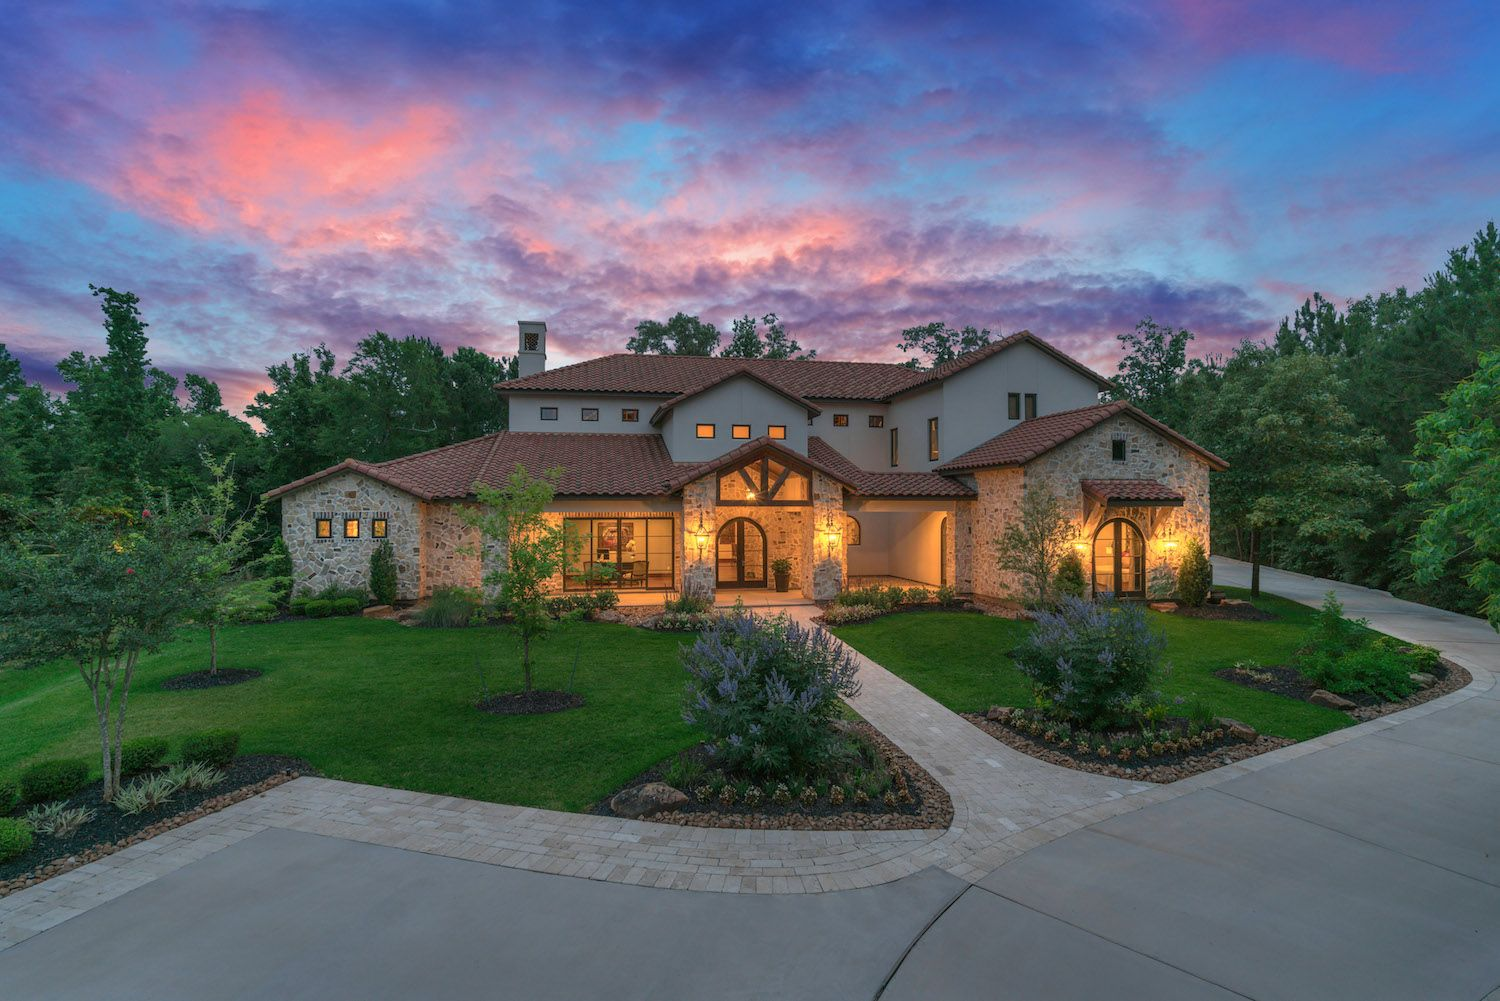 Forest pointe is located in the affluent golf community of